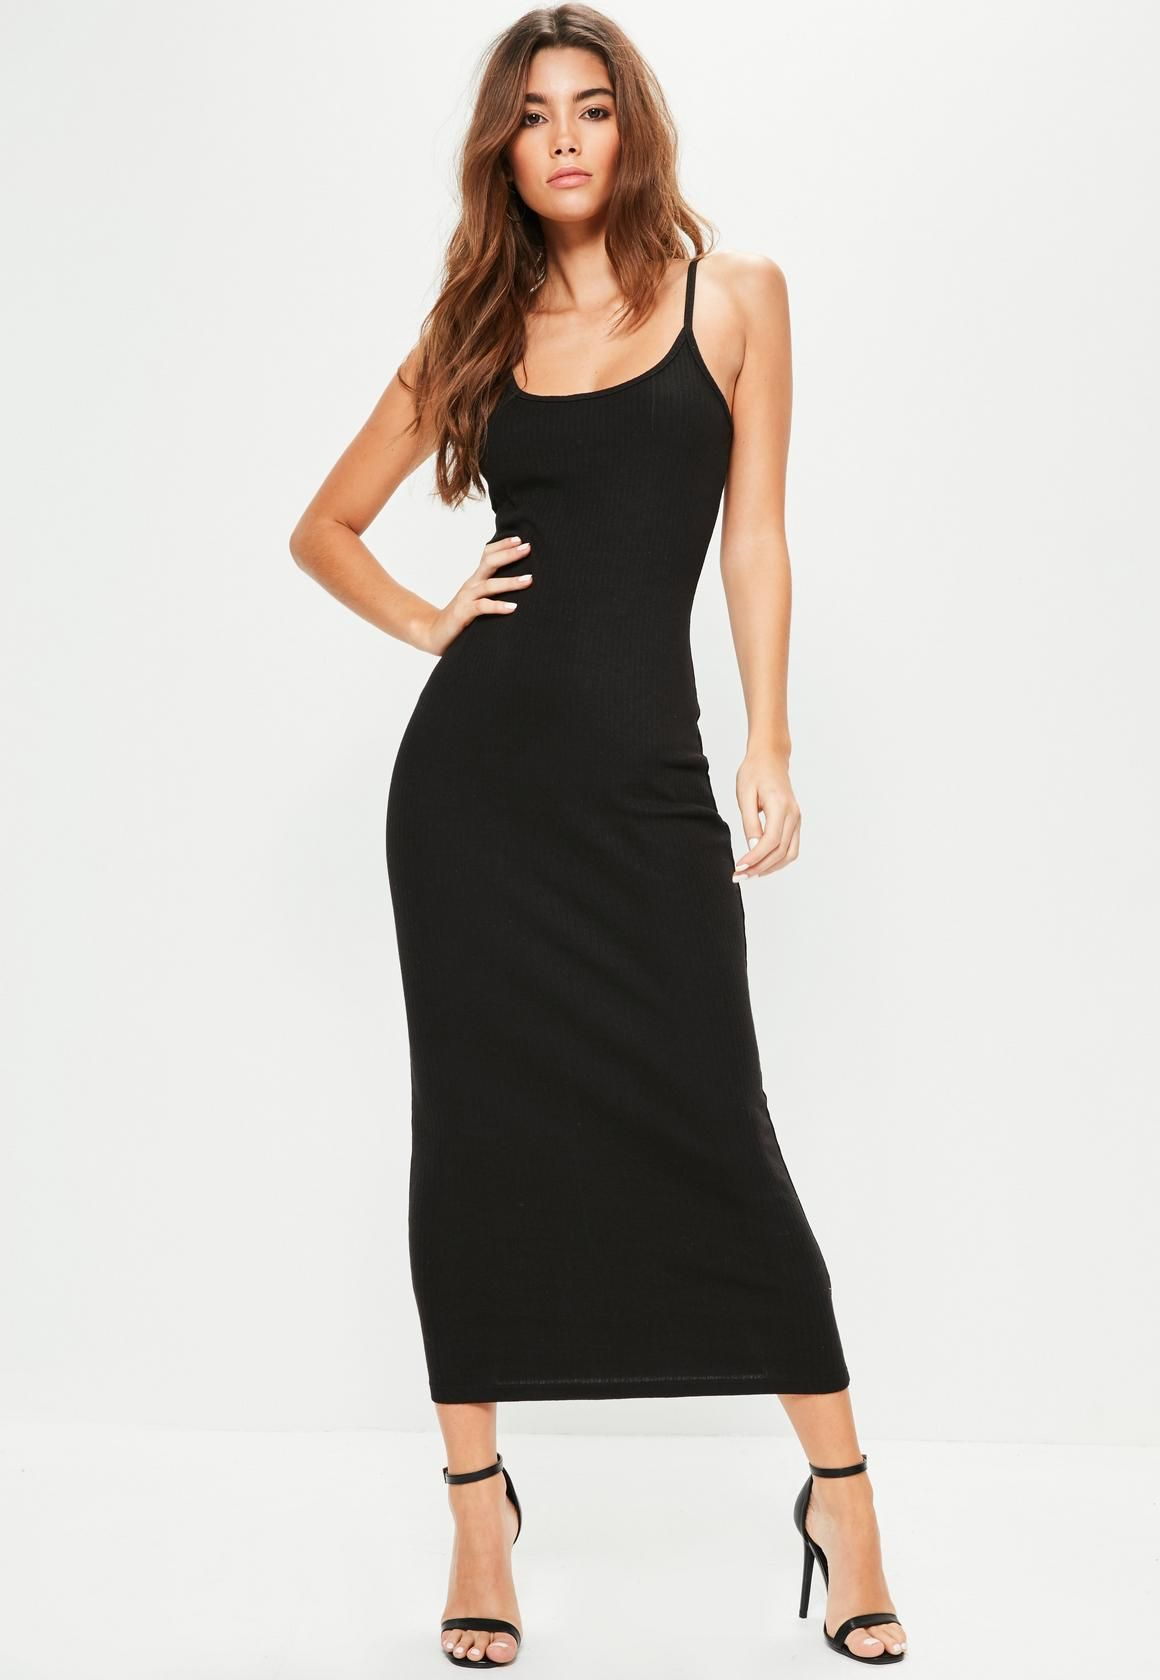 Bring It Back To Basics And Look Effortless With This Black Maxi Dress Featuring Ribbed Fabric Black Ribbed Midi Dress Body Con Dress Outfit Trending Dresses [ 1680 x 1160 Pixel ]